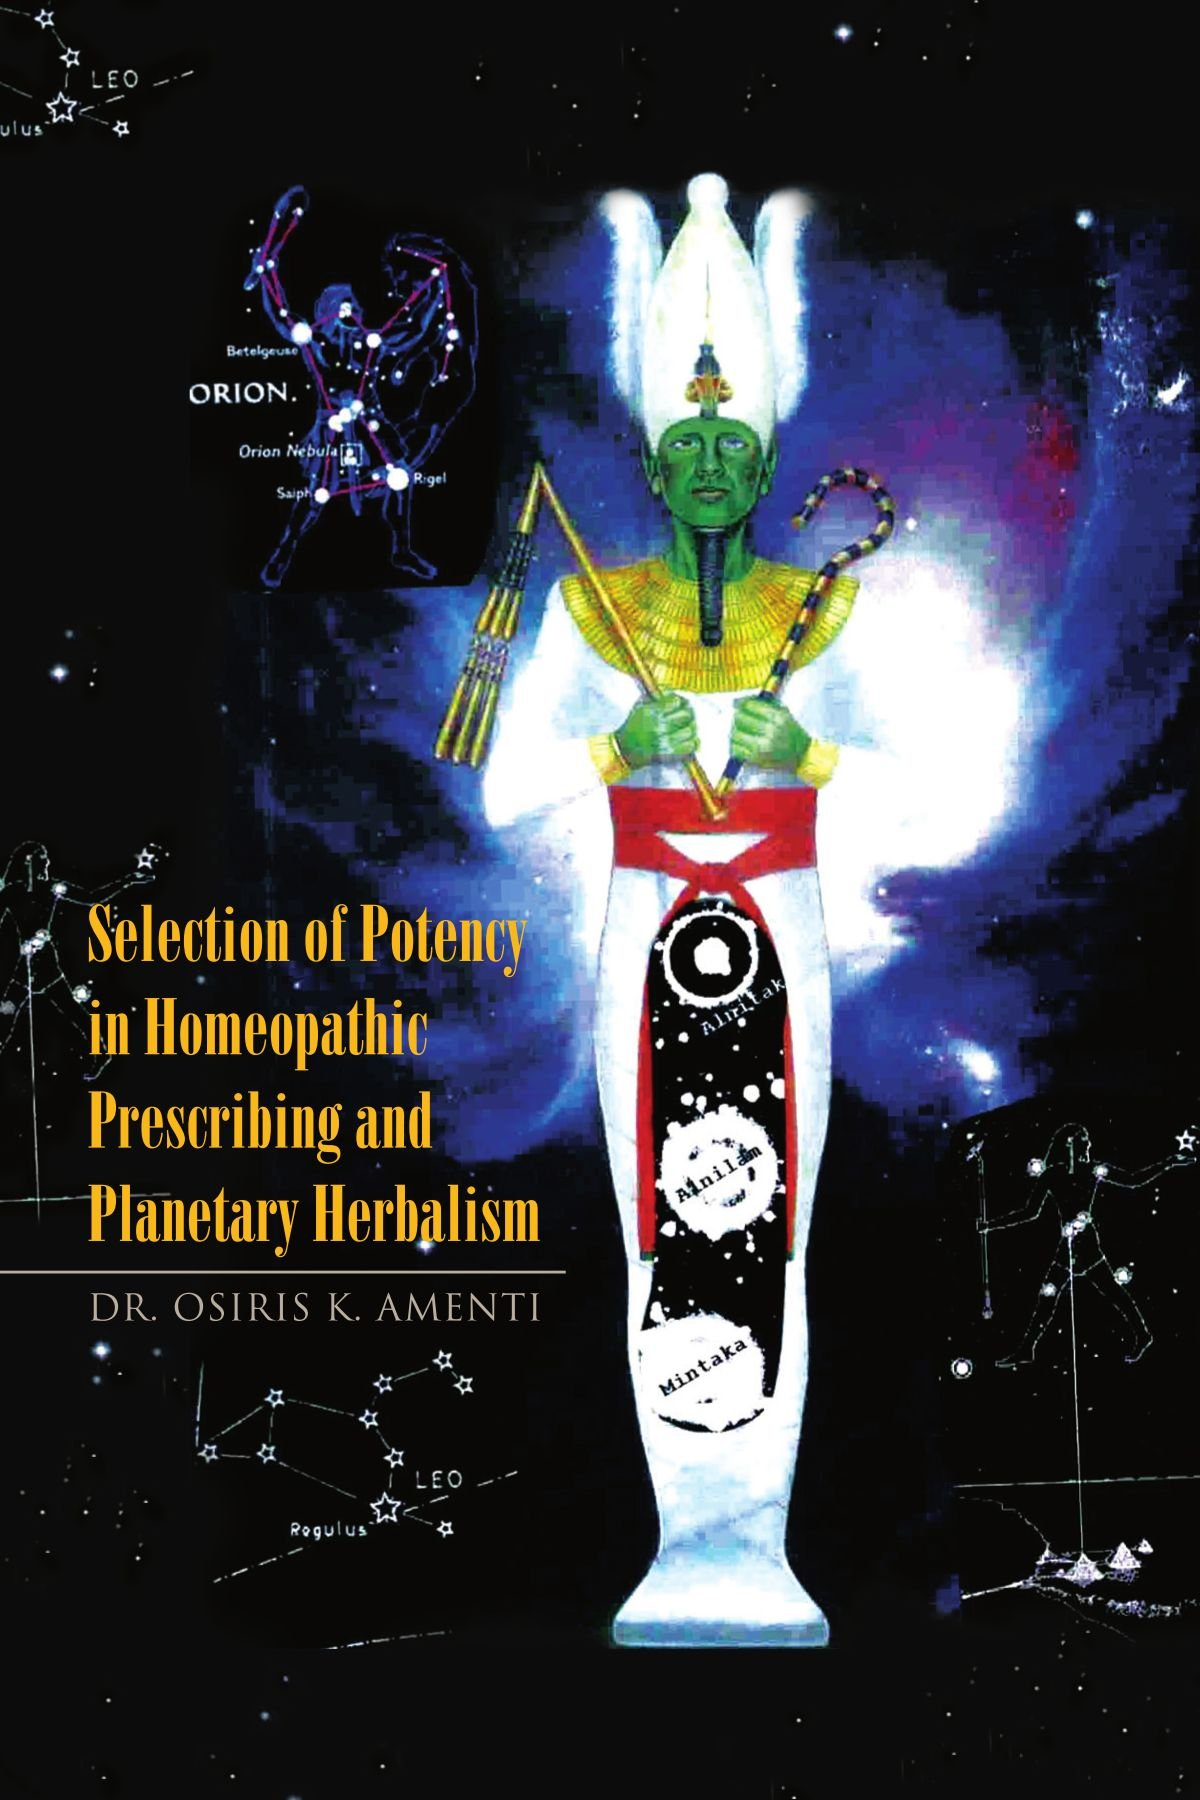 Selection of Potency in Homeopathic Prescribing and